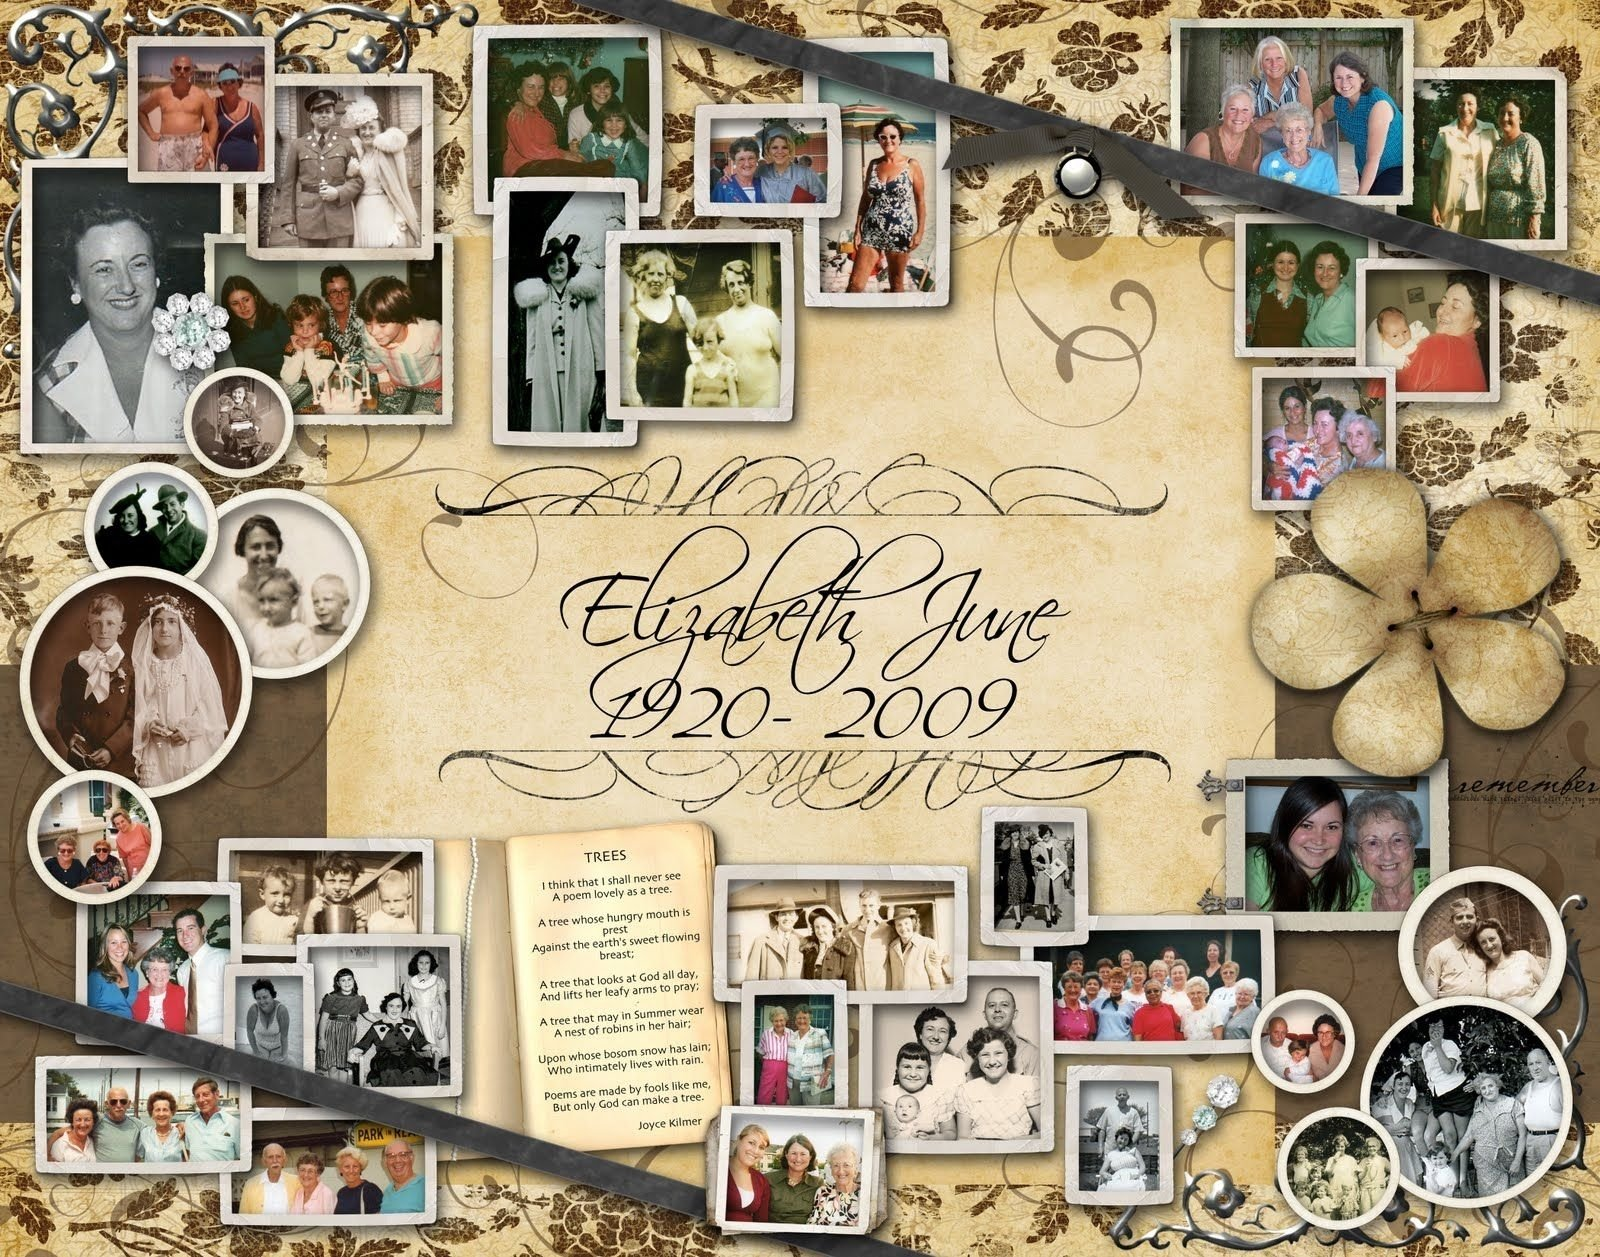 10 Most Popular Ideas For A Memorial Service funeral picture collages google search just for me pinterest 2021